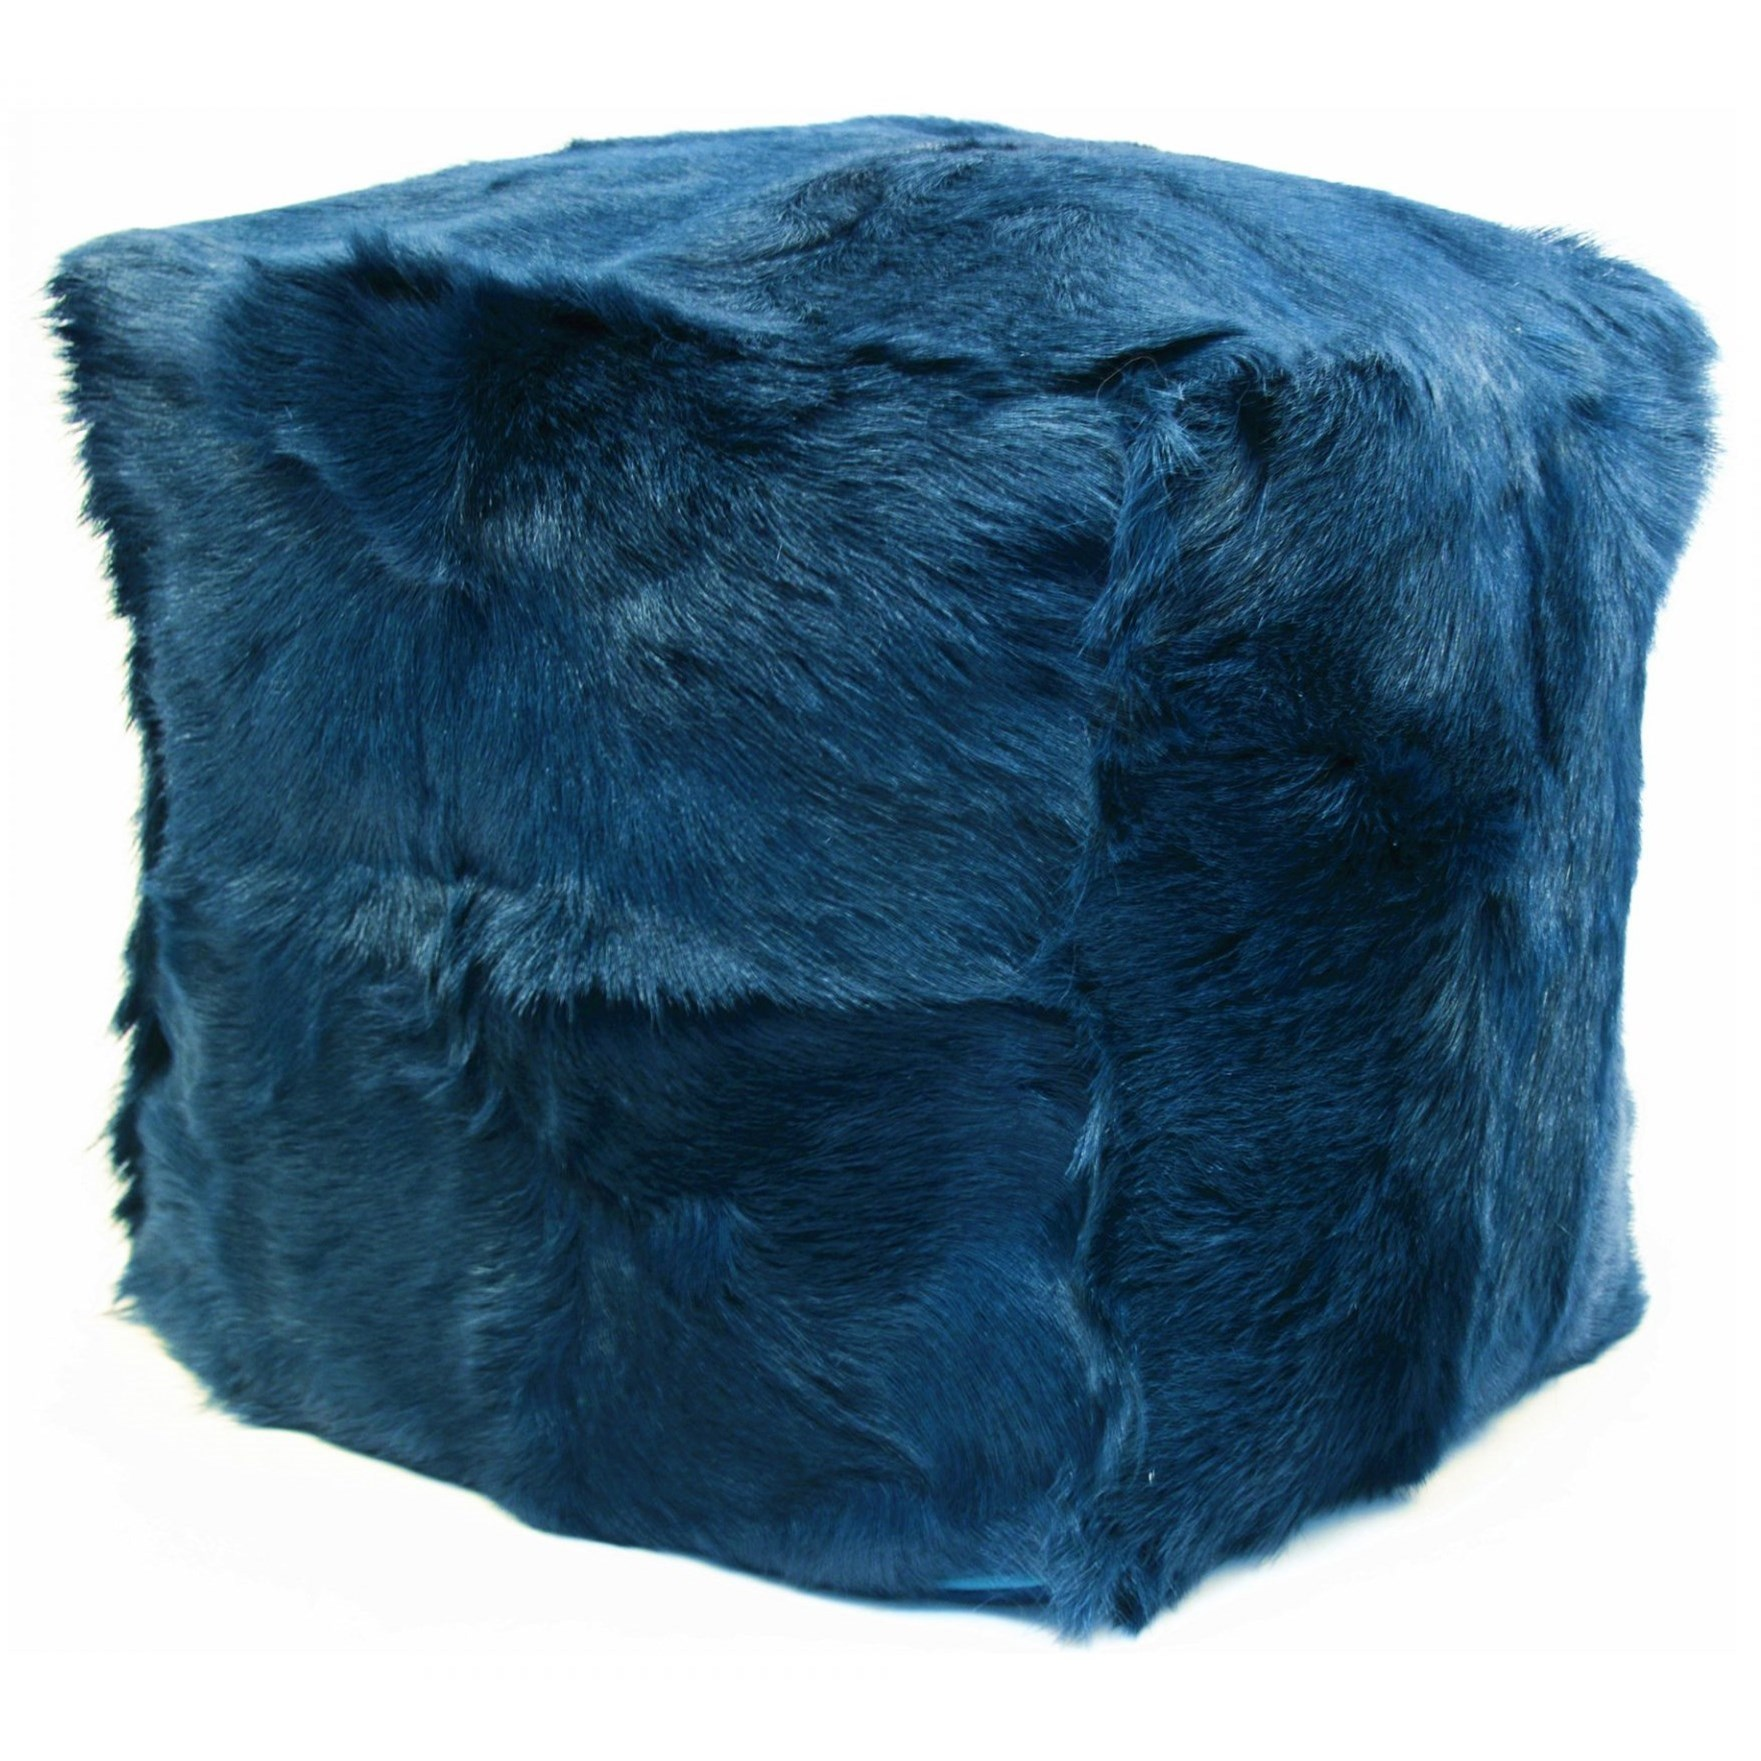 Goat Fur Pouf Navy by Moe's Home Collection at Stoney Creek Furniture